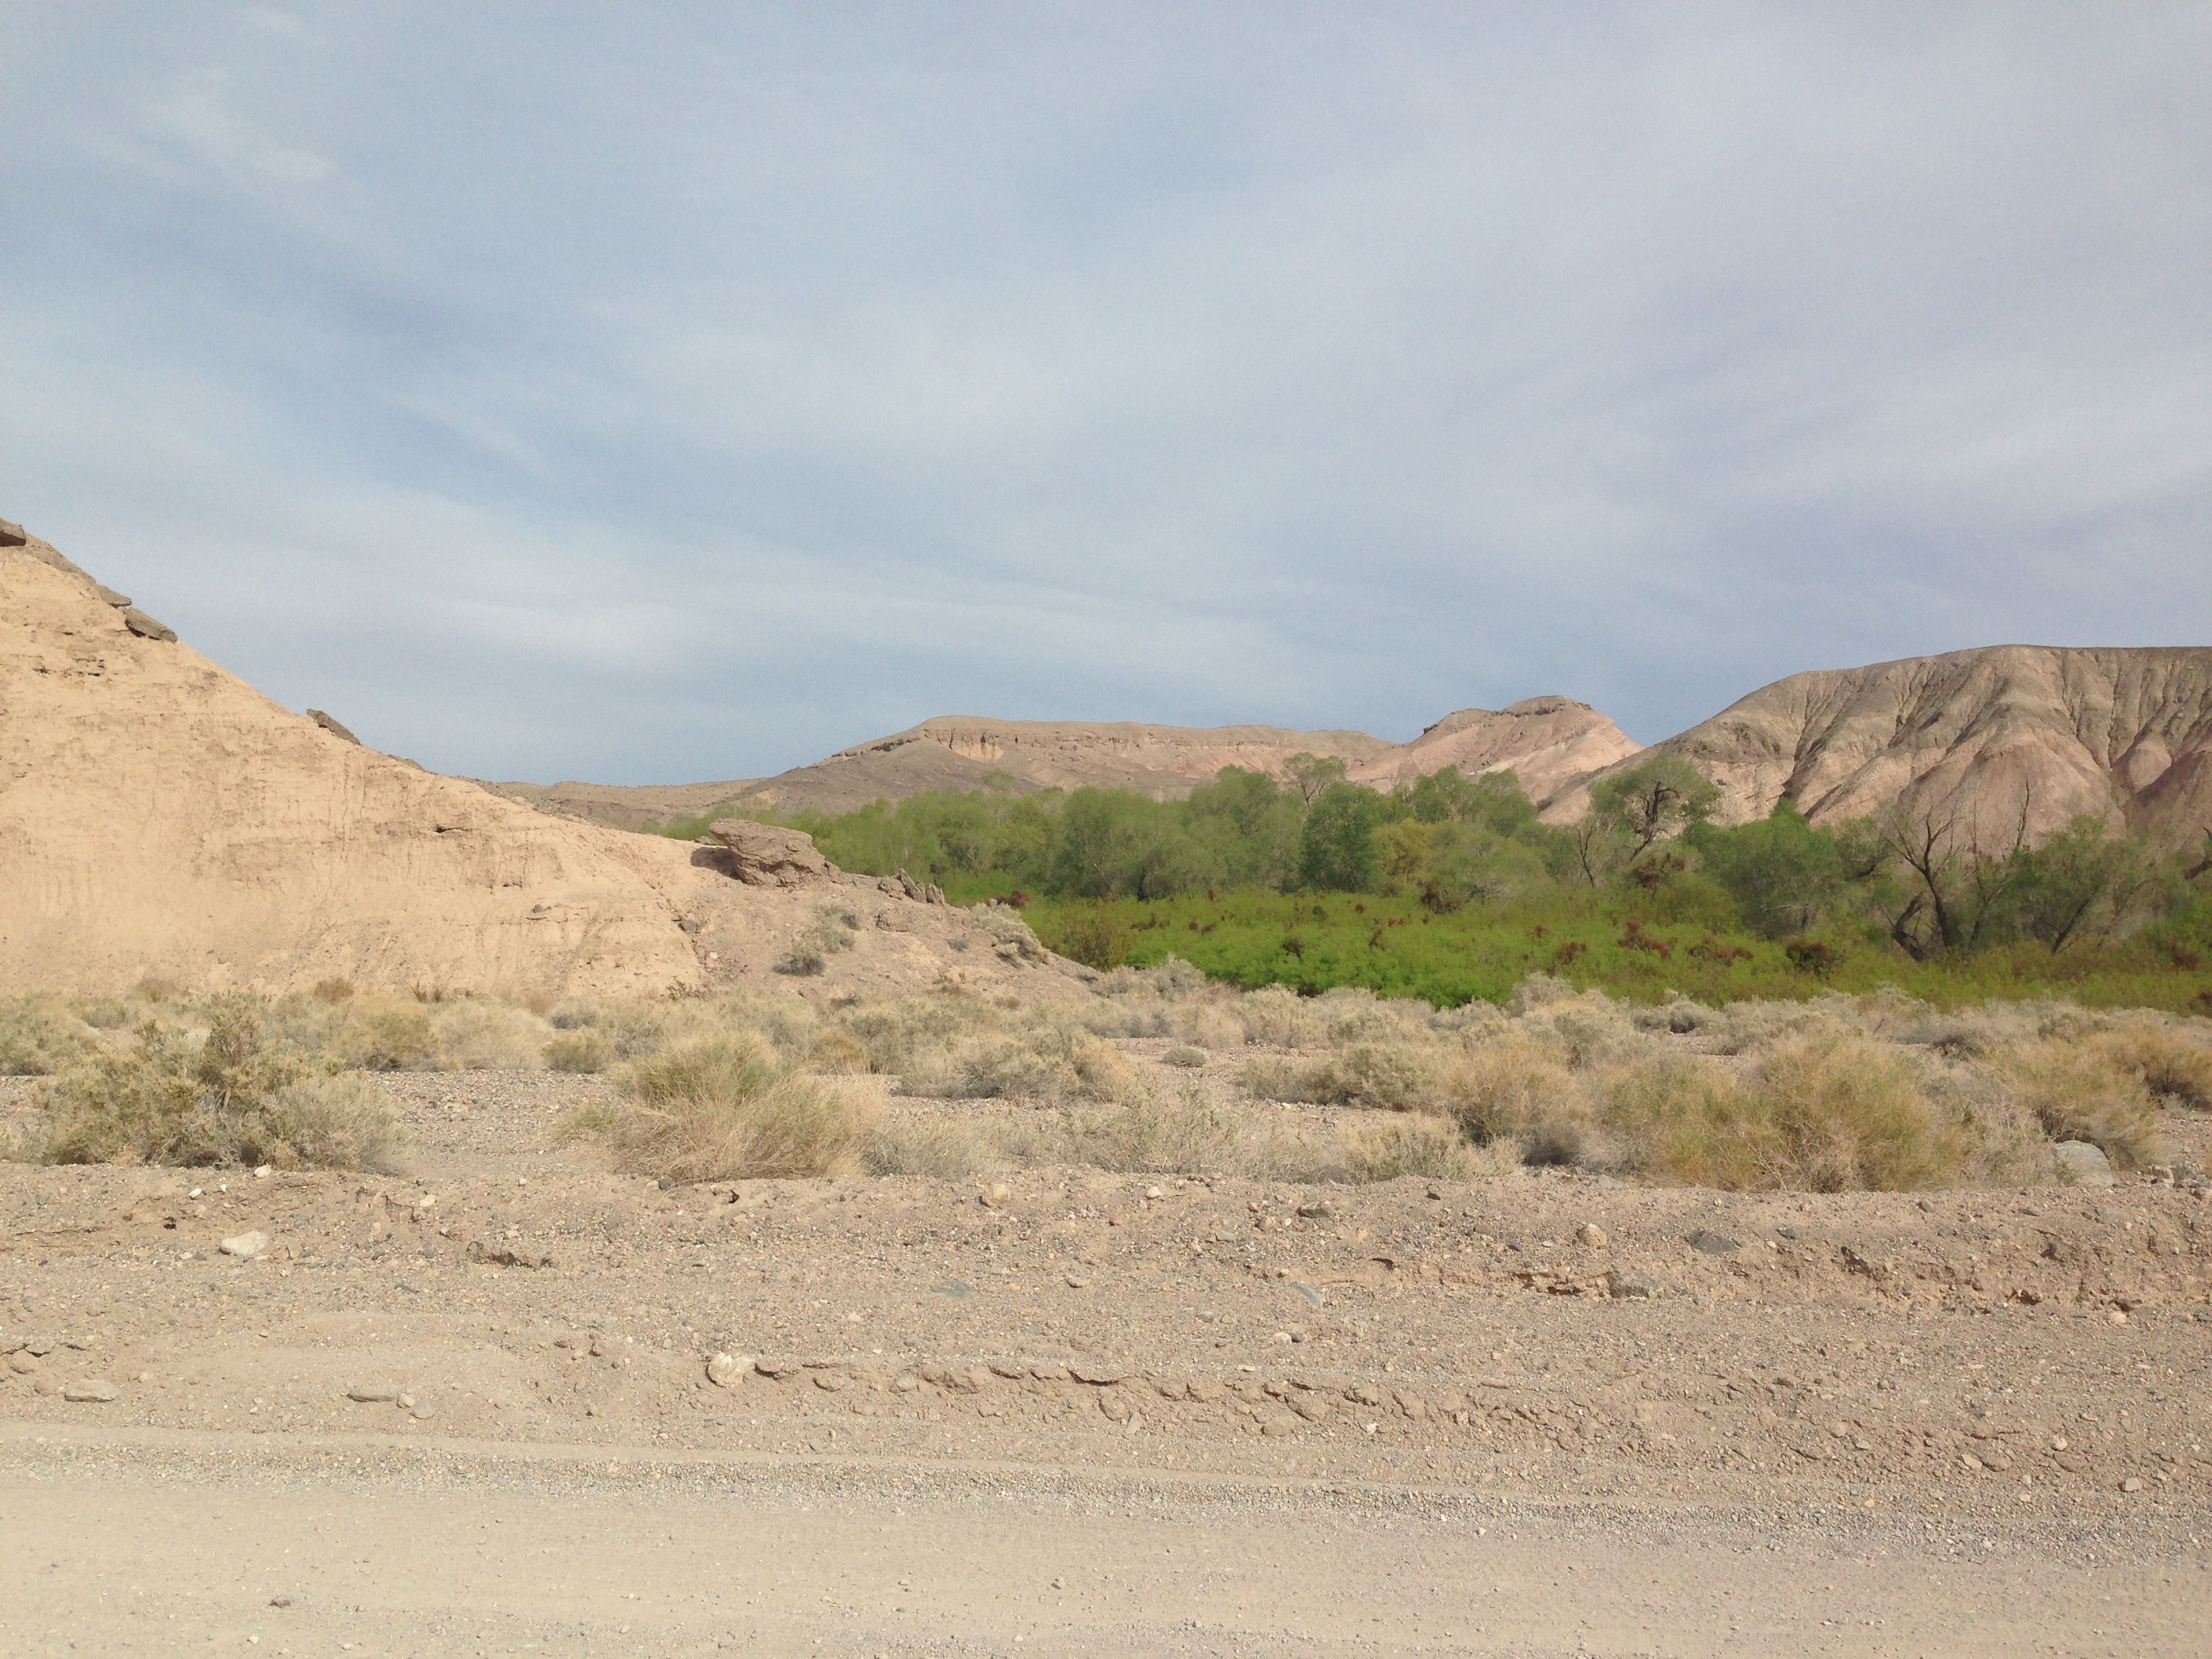 The amazing desert oasis of the China Ranch Date Farm, from the Amargosa River in CA